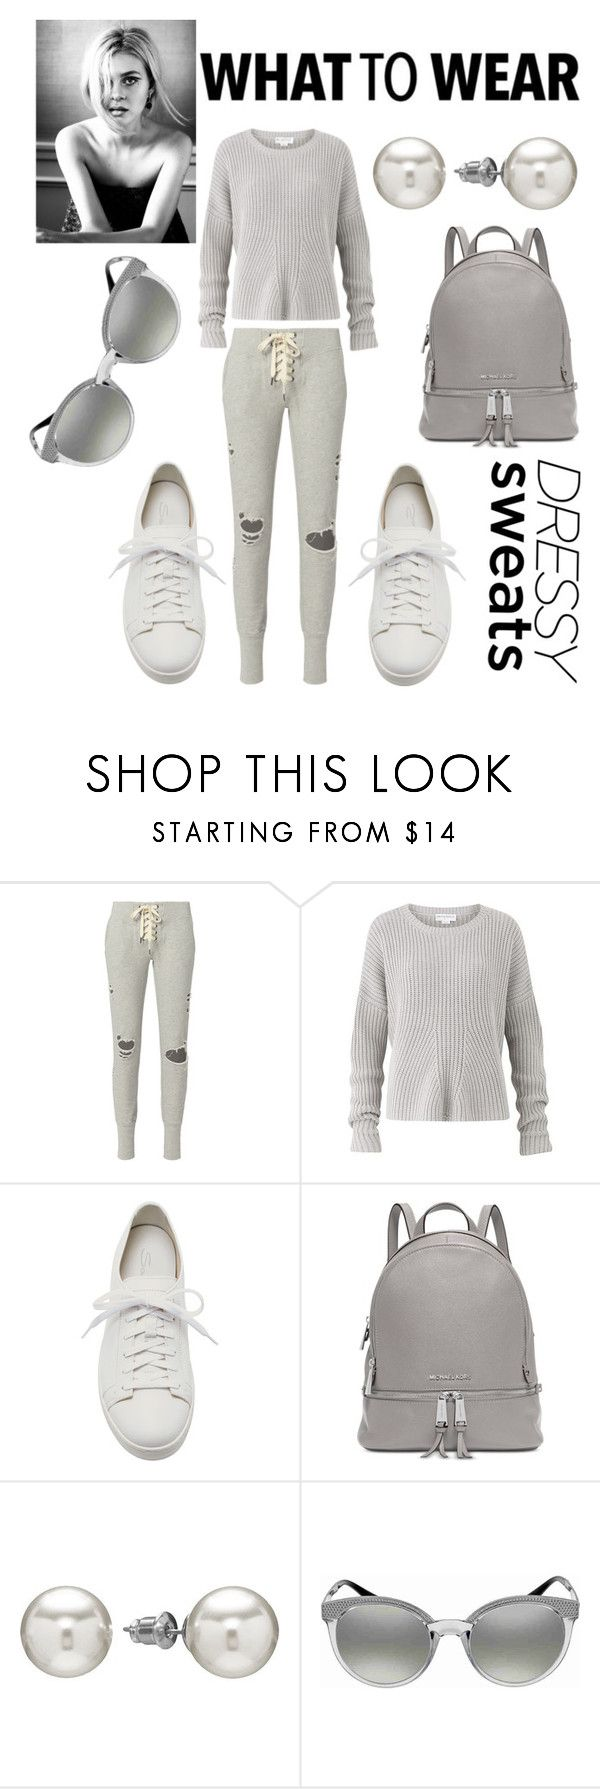 """""""What to wear."""" by ana-silva-386 ❤ liked on Polyvore featuring NSF, Amanda Wakeley, Santoni, Michael Kors, Chaps, Versace and sweatpants"""